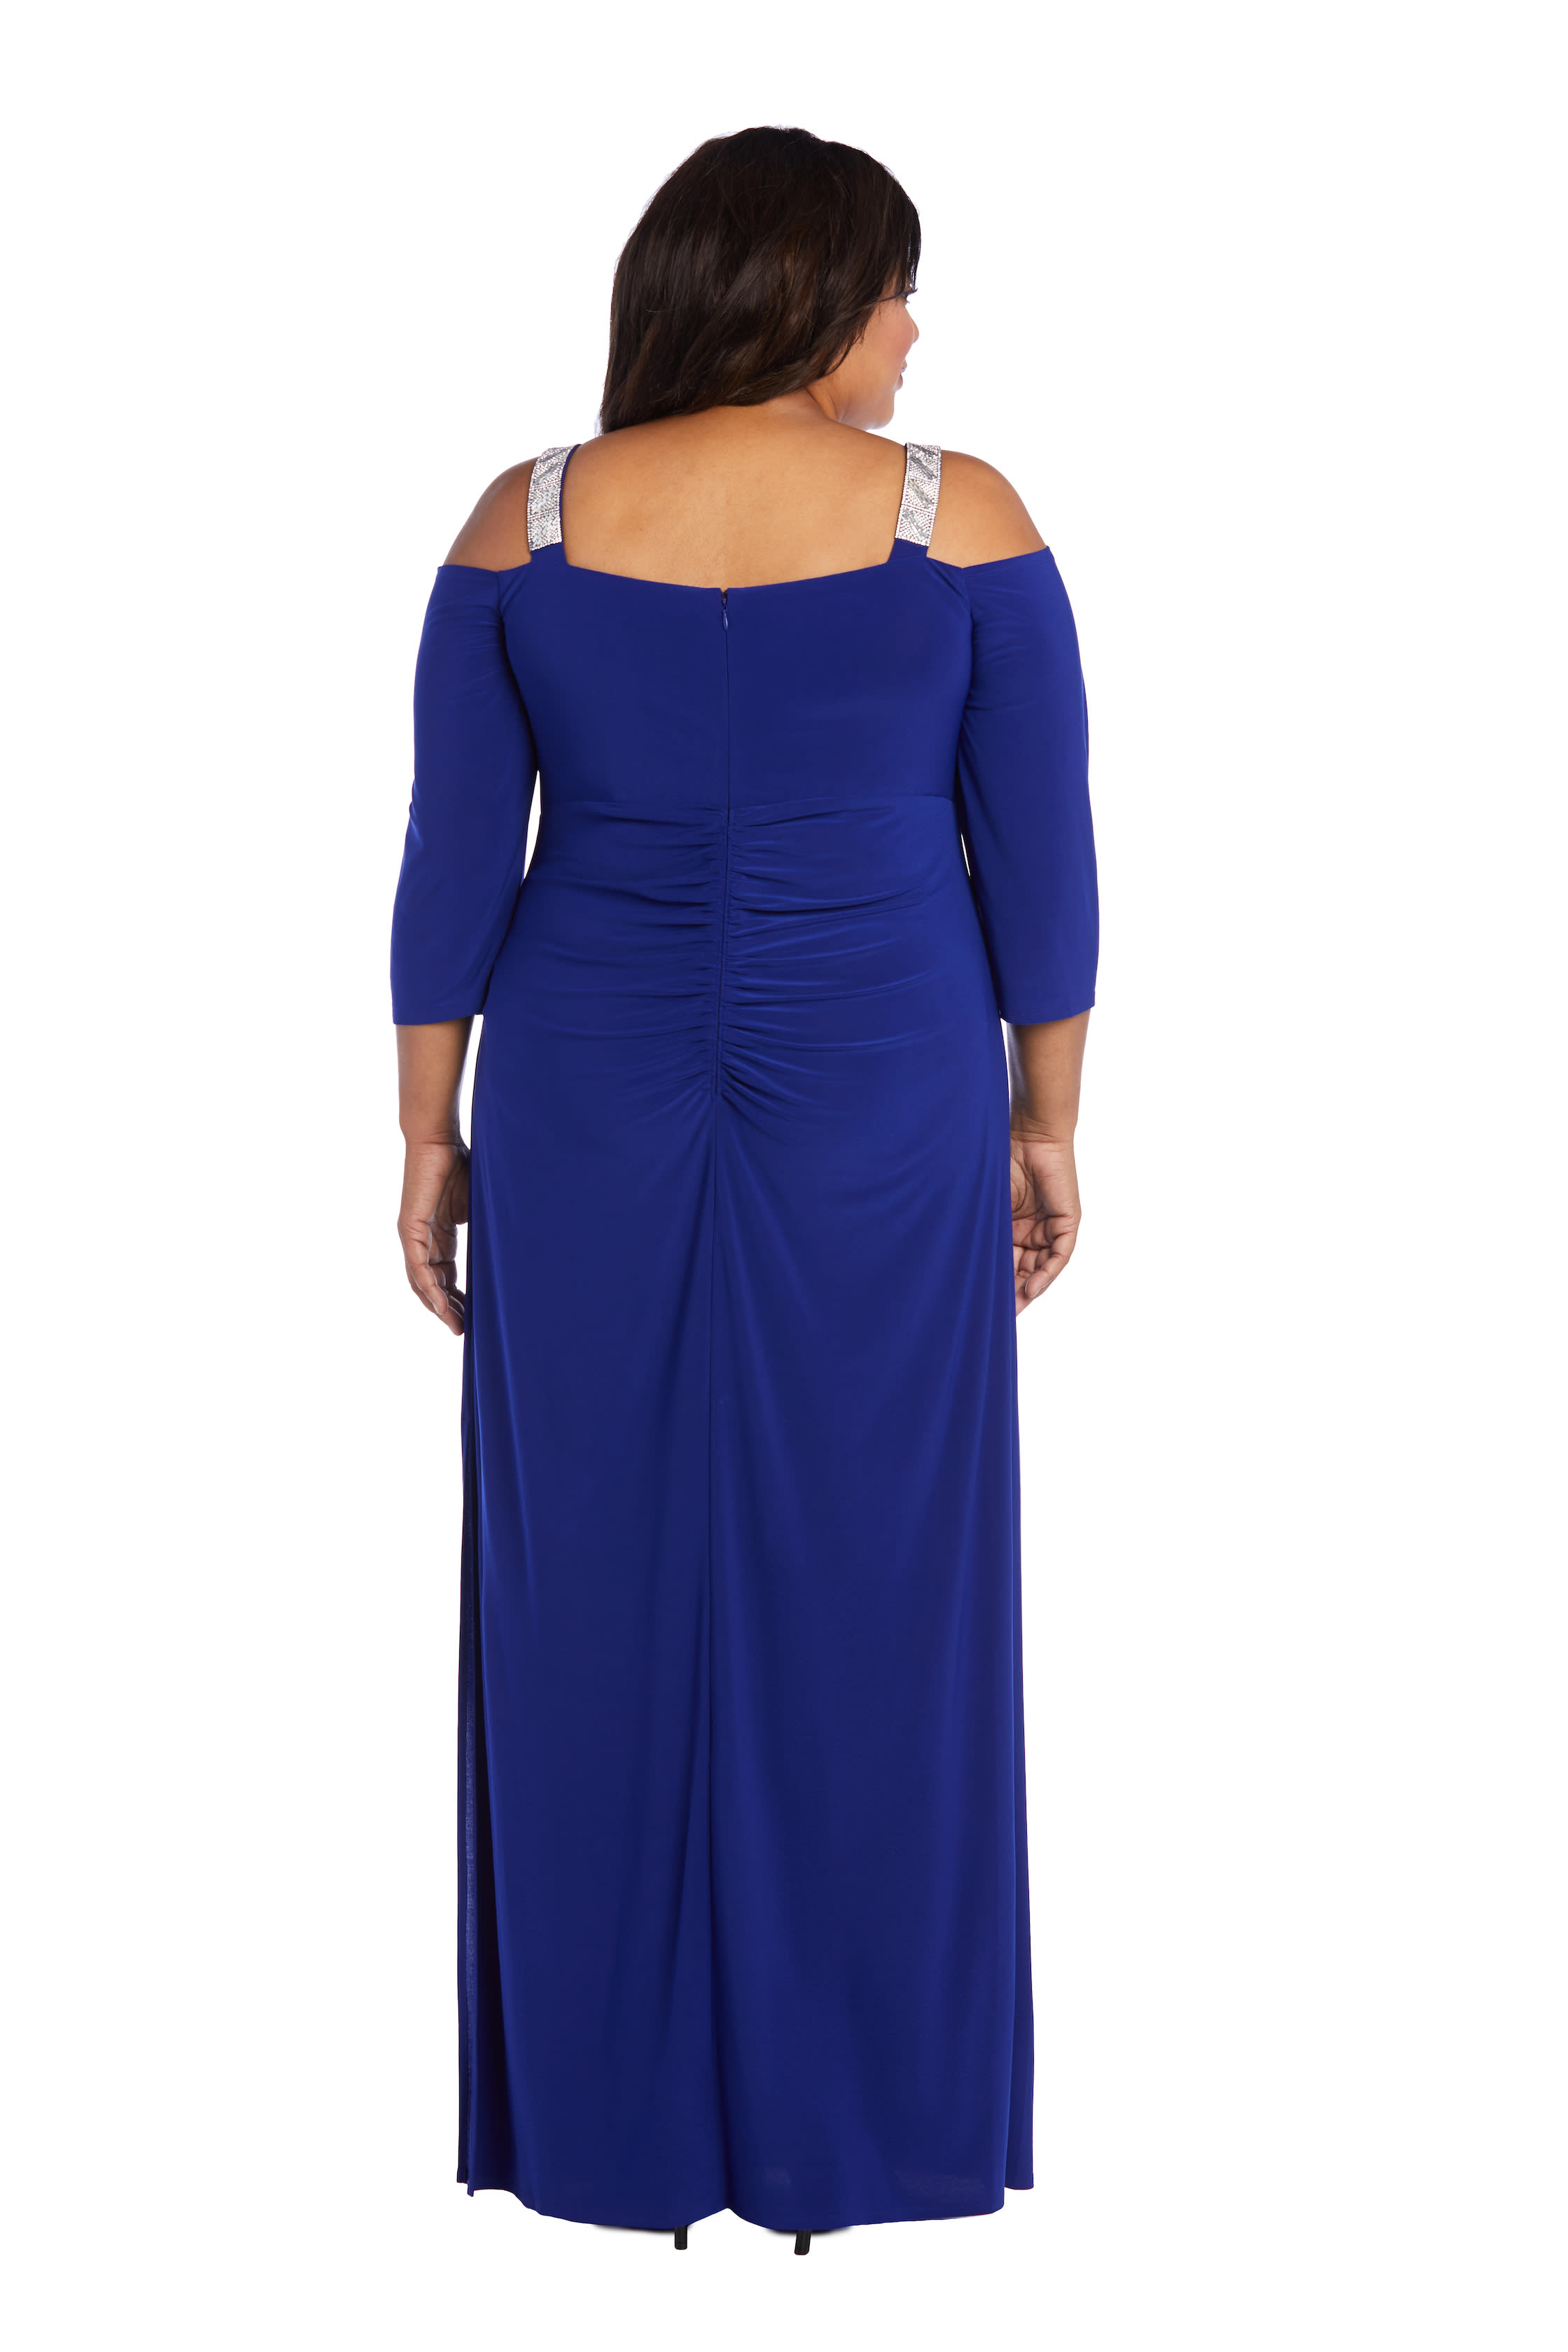 Embellished Cold Shoulder Gown - Electric Blue - Back